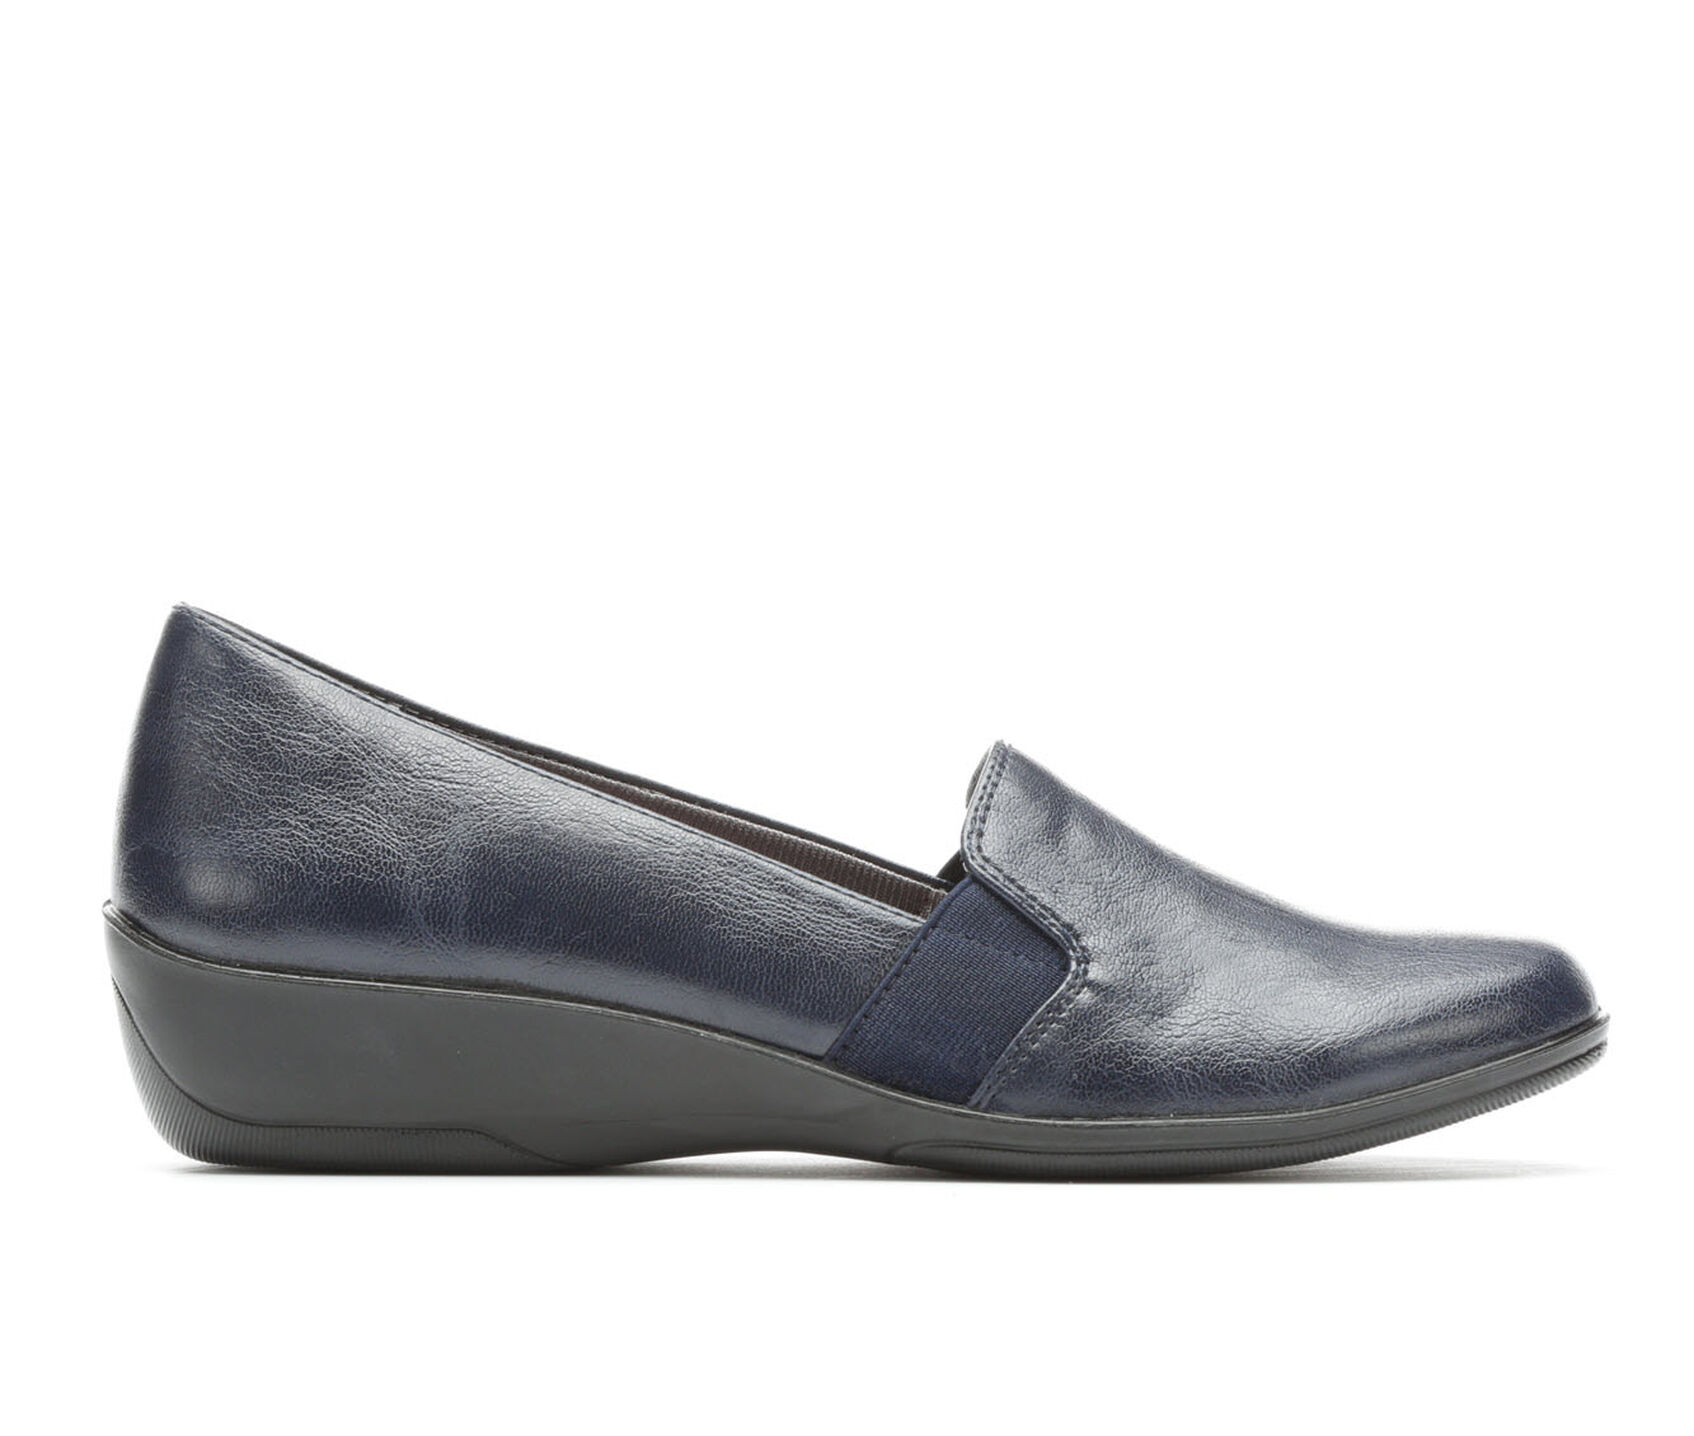 55d70238572 Women s LifeStride Isabelle Loafers